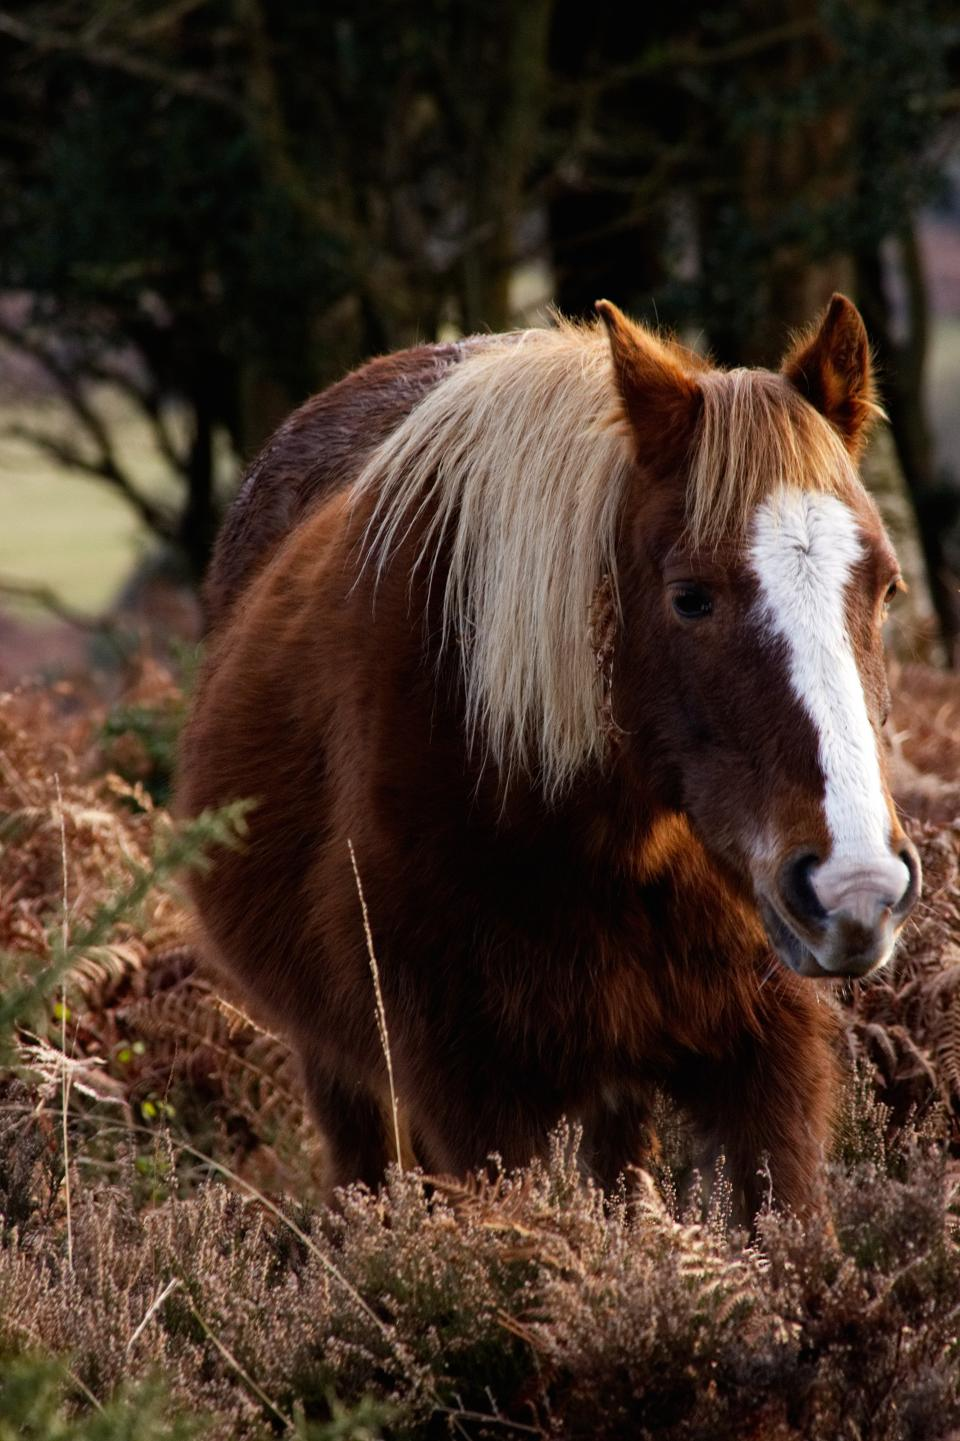 horse animal brown grassland plant trees woods snout